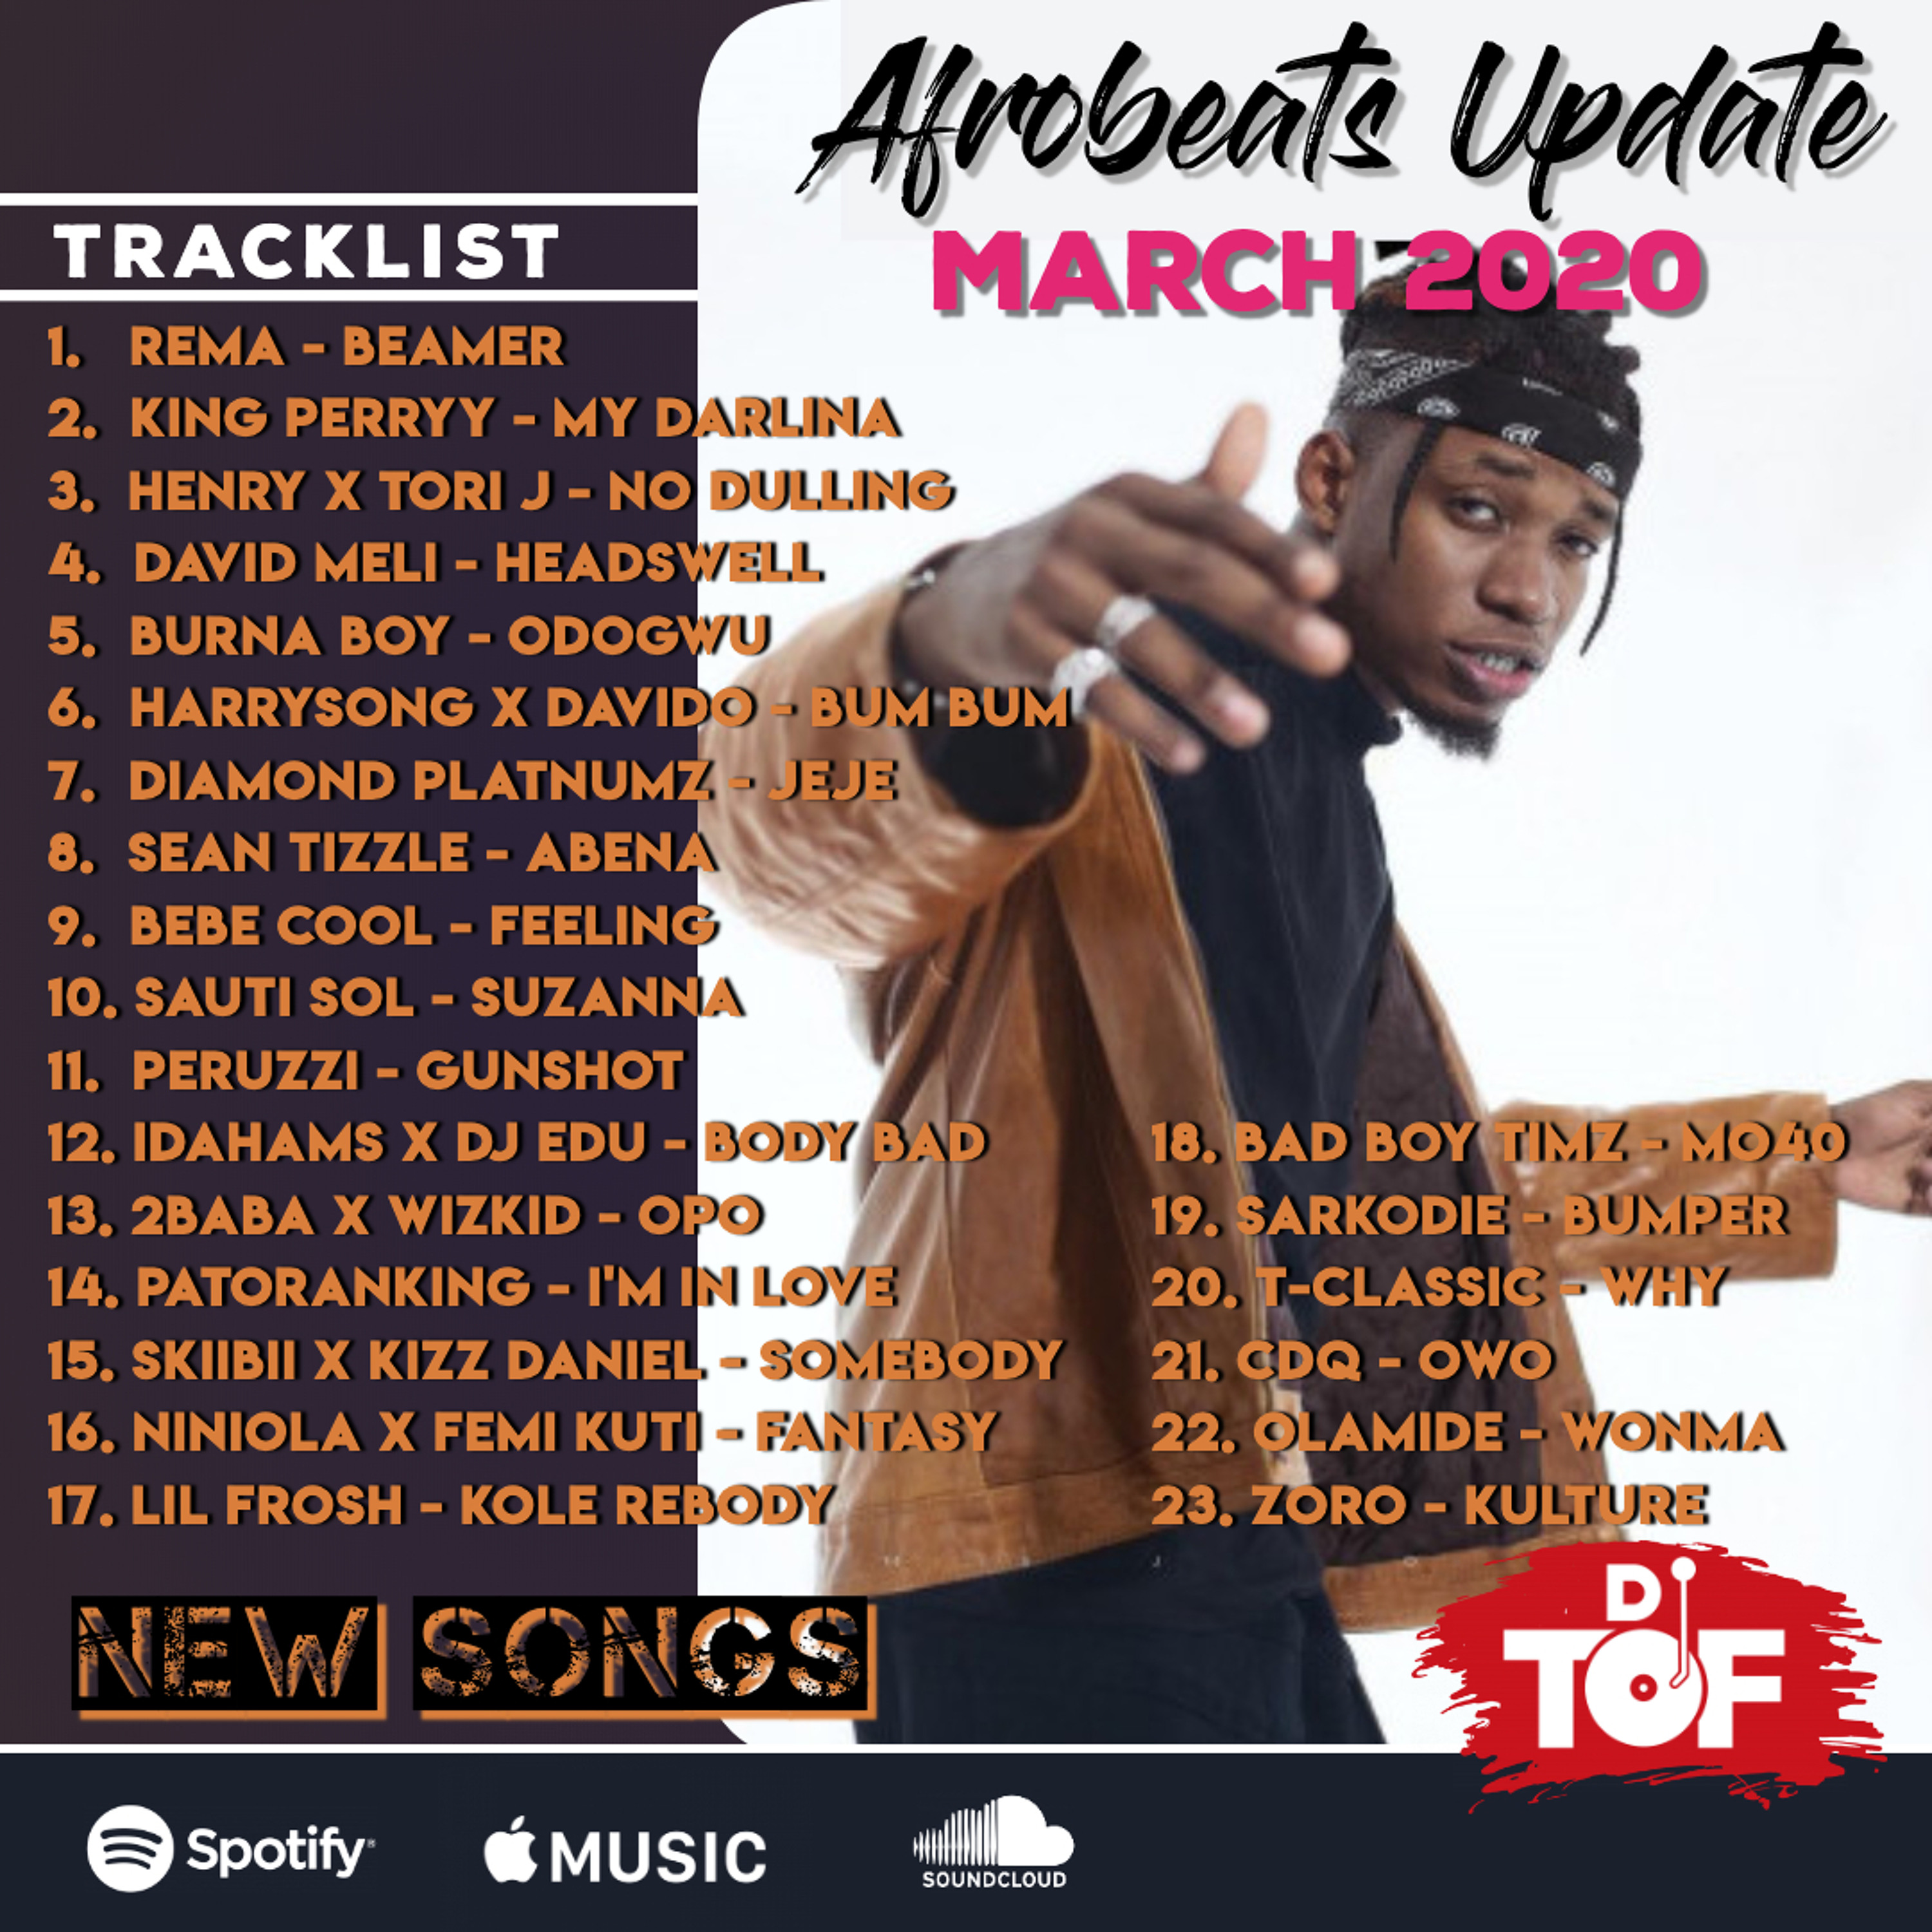 [NEW SONGS] AFROBEATS UPDATE - MARCH 2020